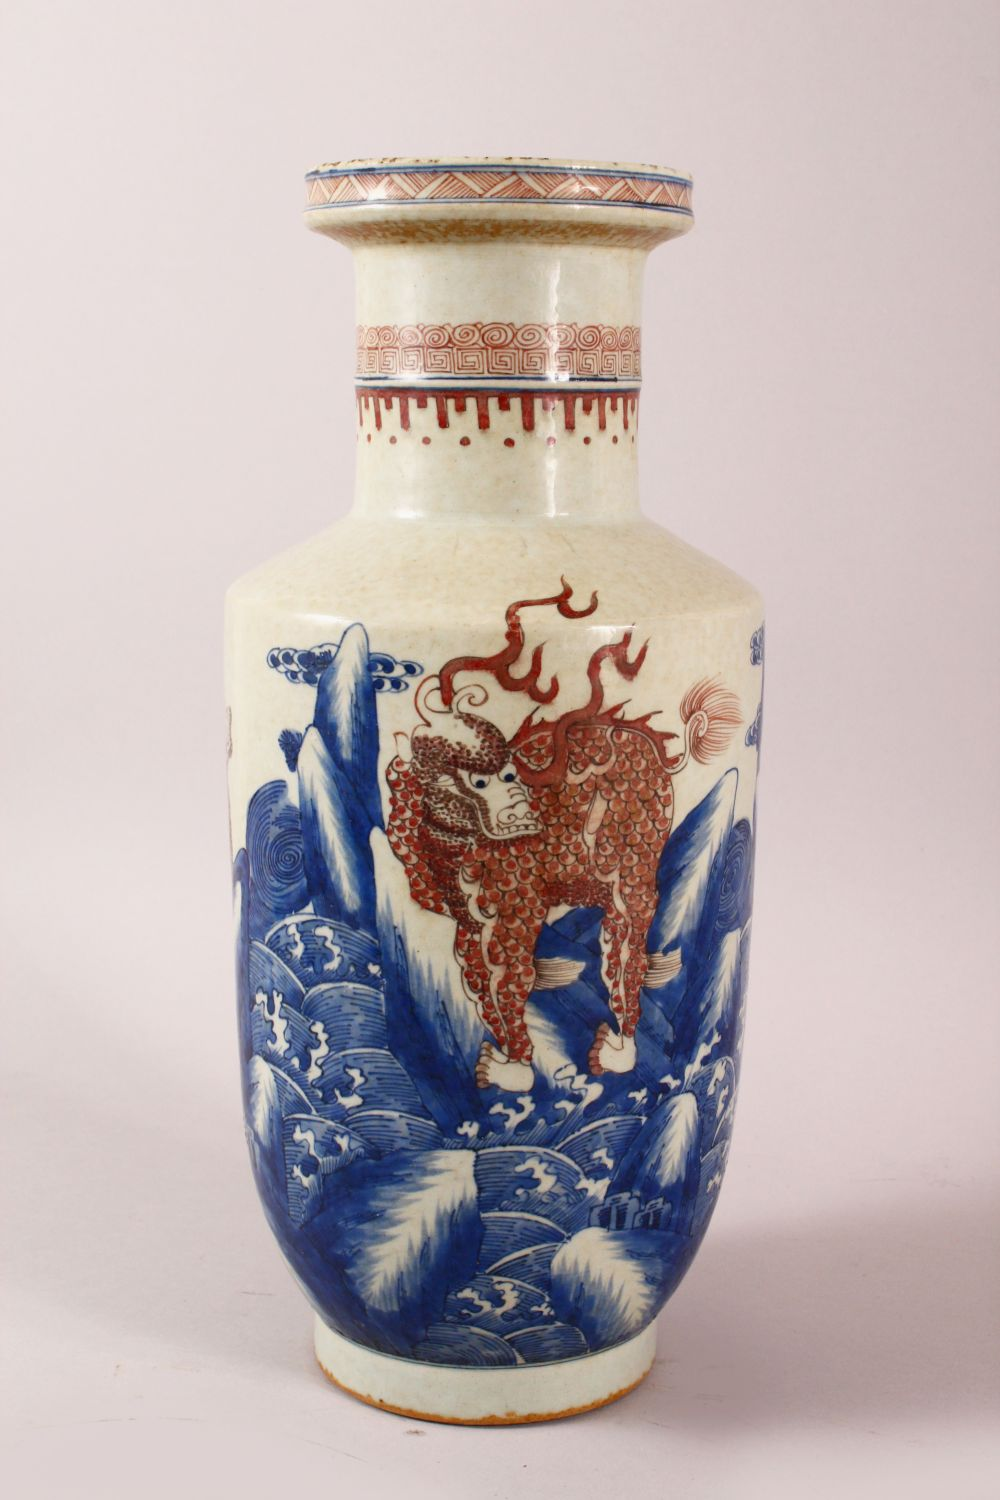 A CHINESE UNDERGLAZE BLUE & COPPER RED PORCELAIN VASE, decorated with lion dogs and waves, six